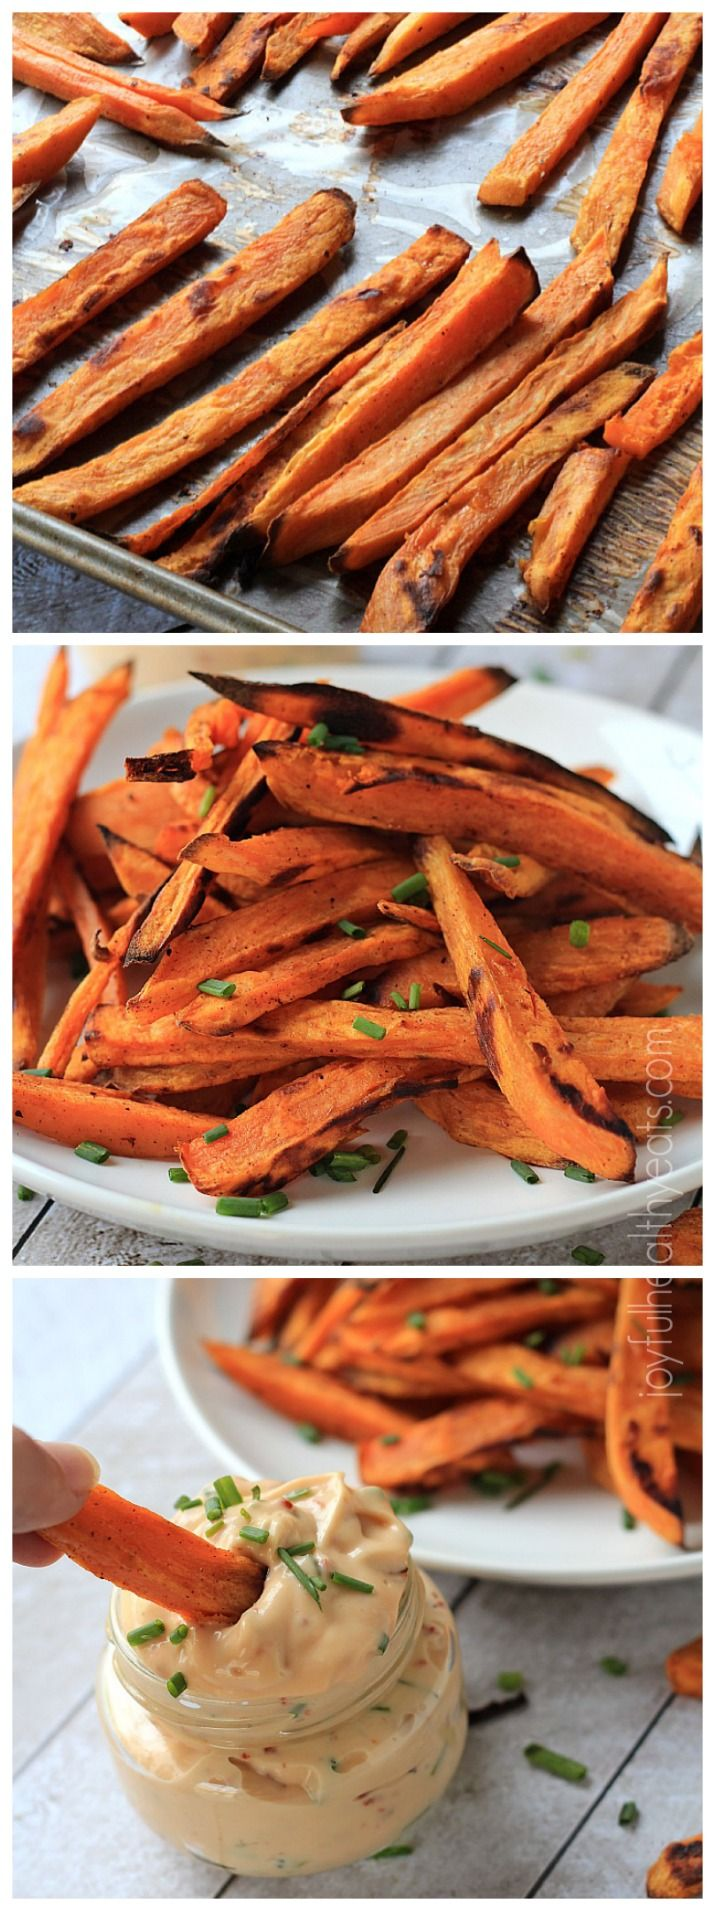 Officially addicted to these Sweet Potato Fries, and their healthy cuz their Baked. Plus it has a dynamite sauce! | www.joyfulhealthyeats.com